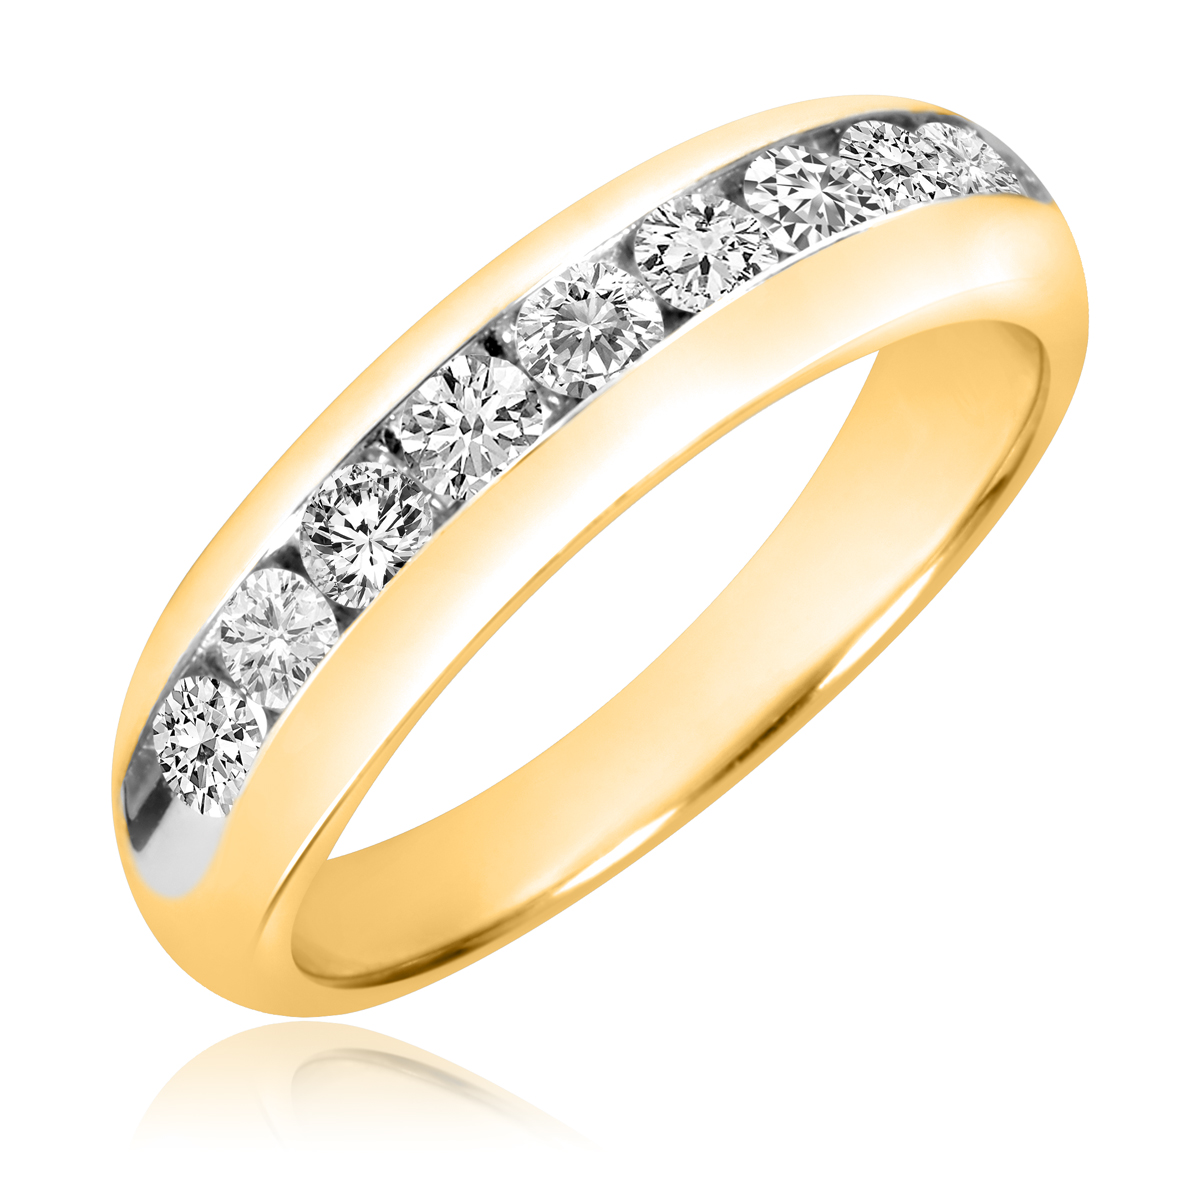 1 Carat T.W. Round Cut Diamond Men's Wedding Band 10K Yellow Gold- Size 8